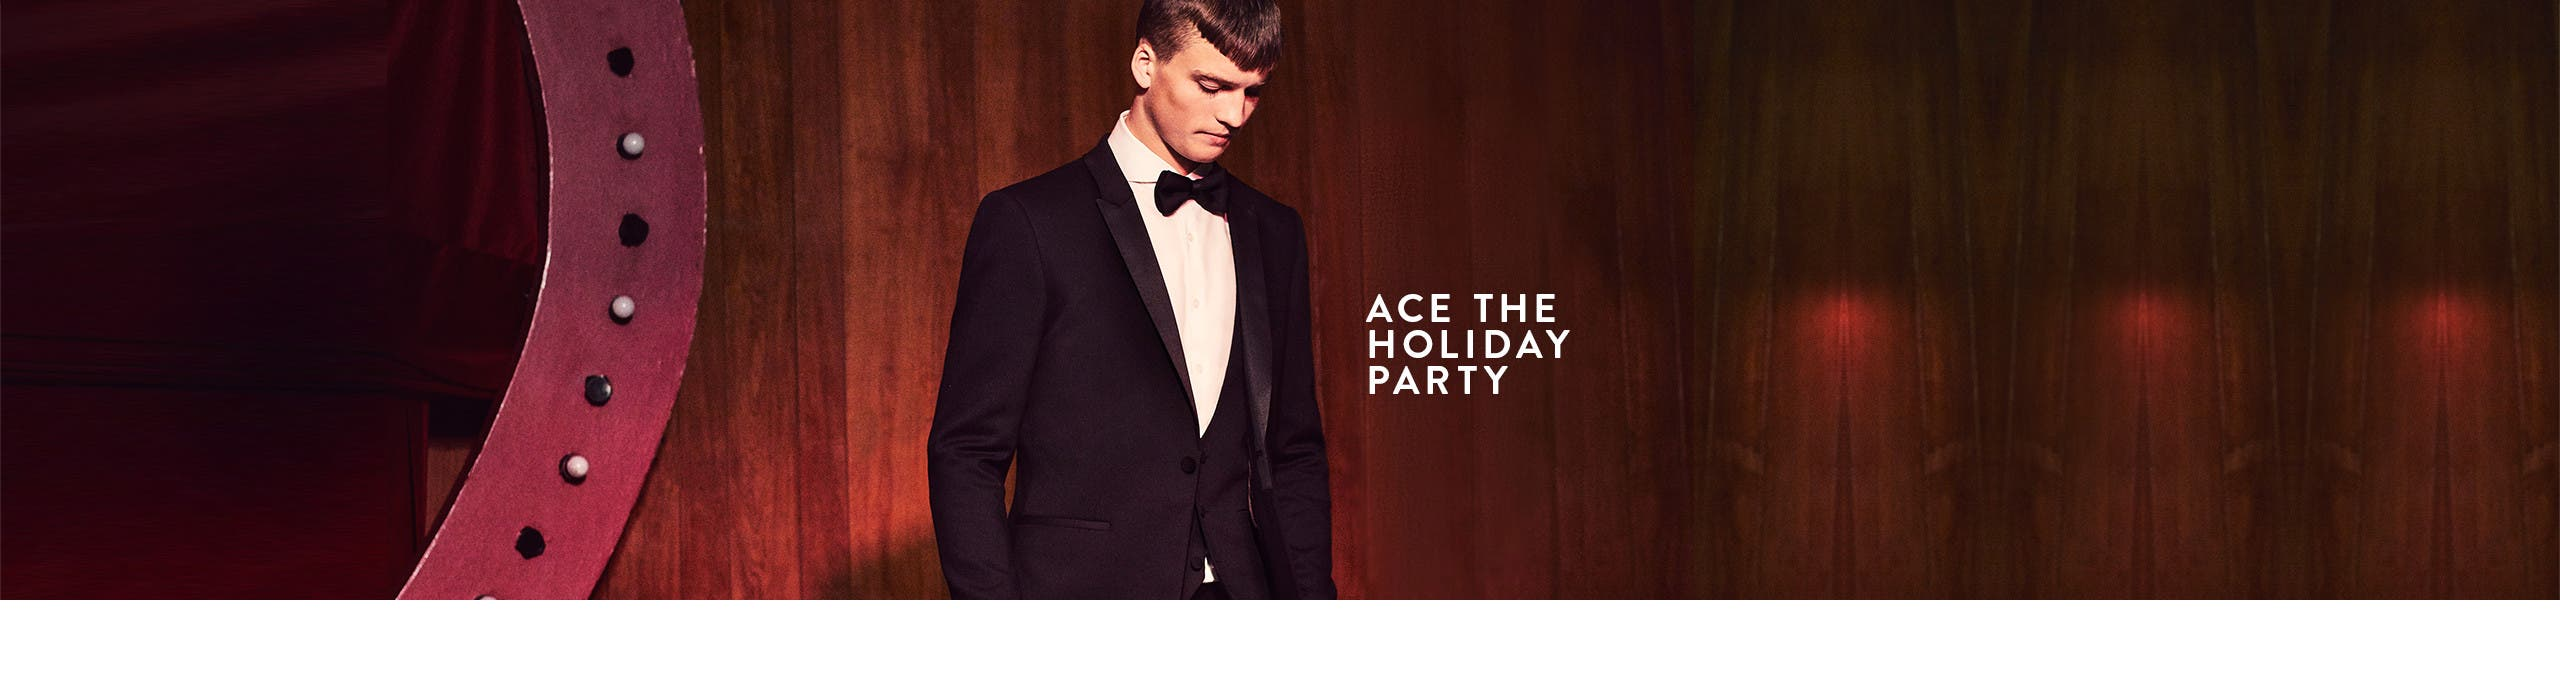 Ace the holiday party.